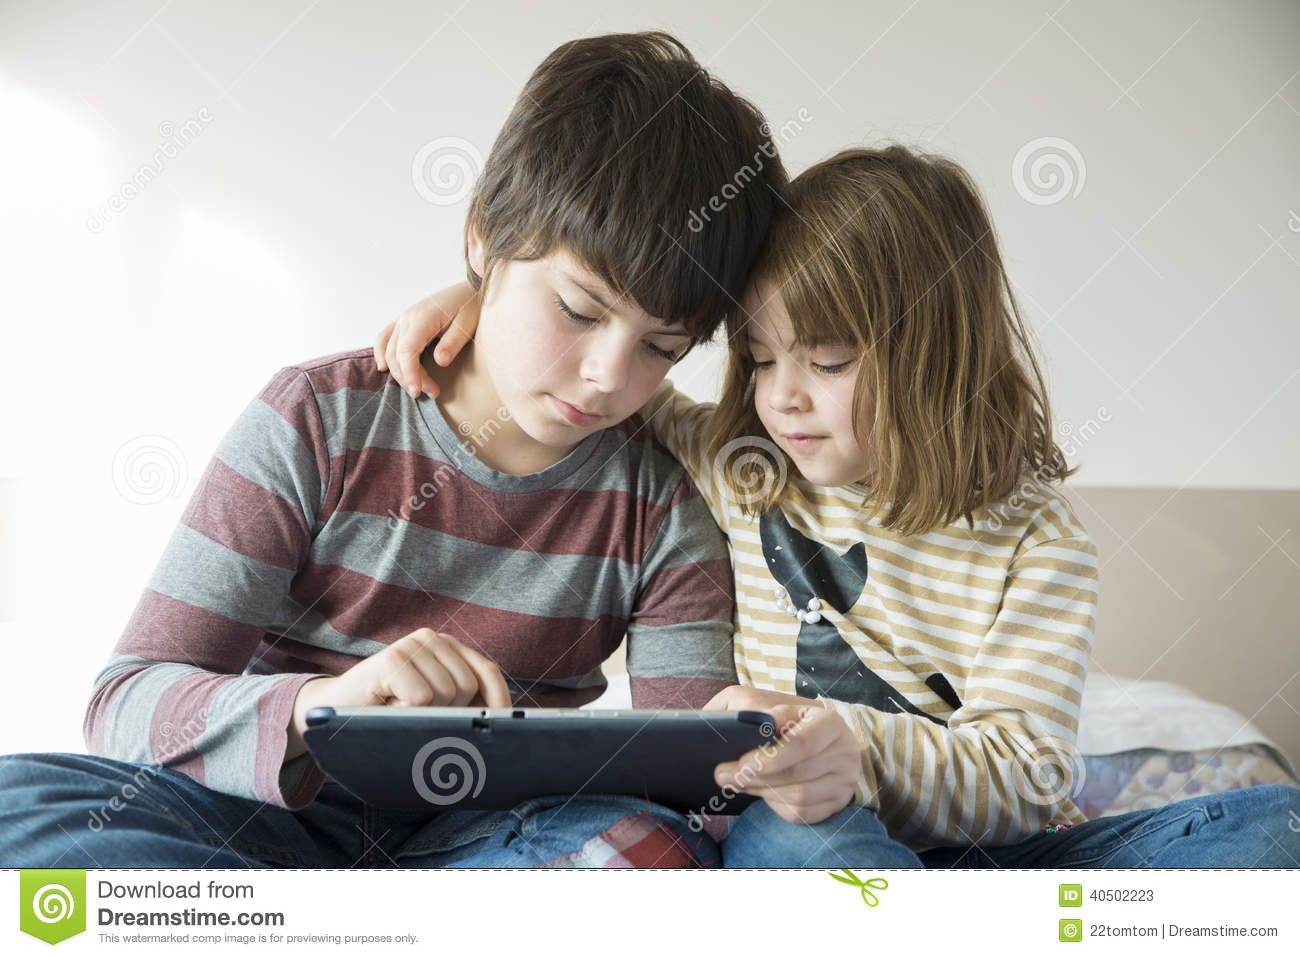 Children playing with a digital tablet